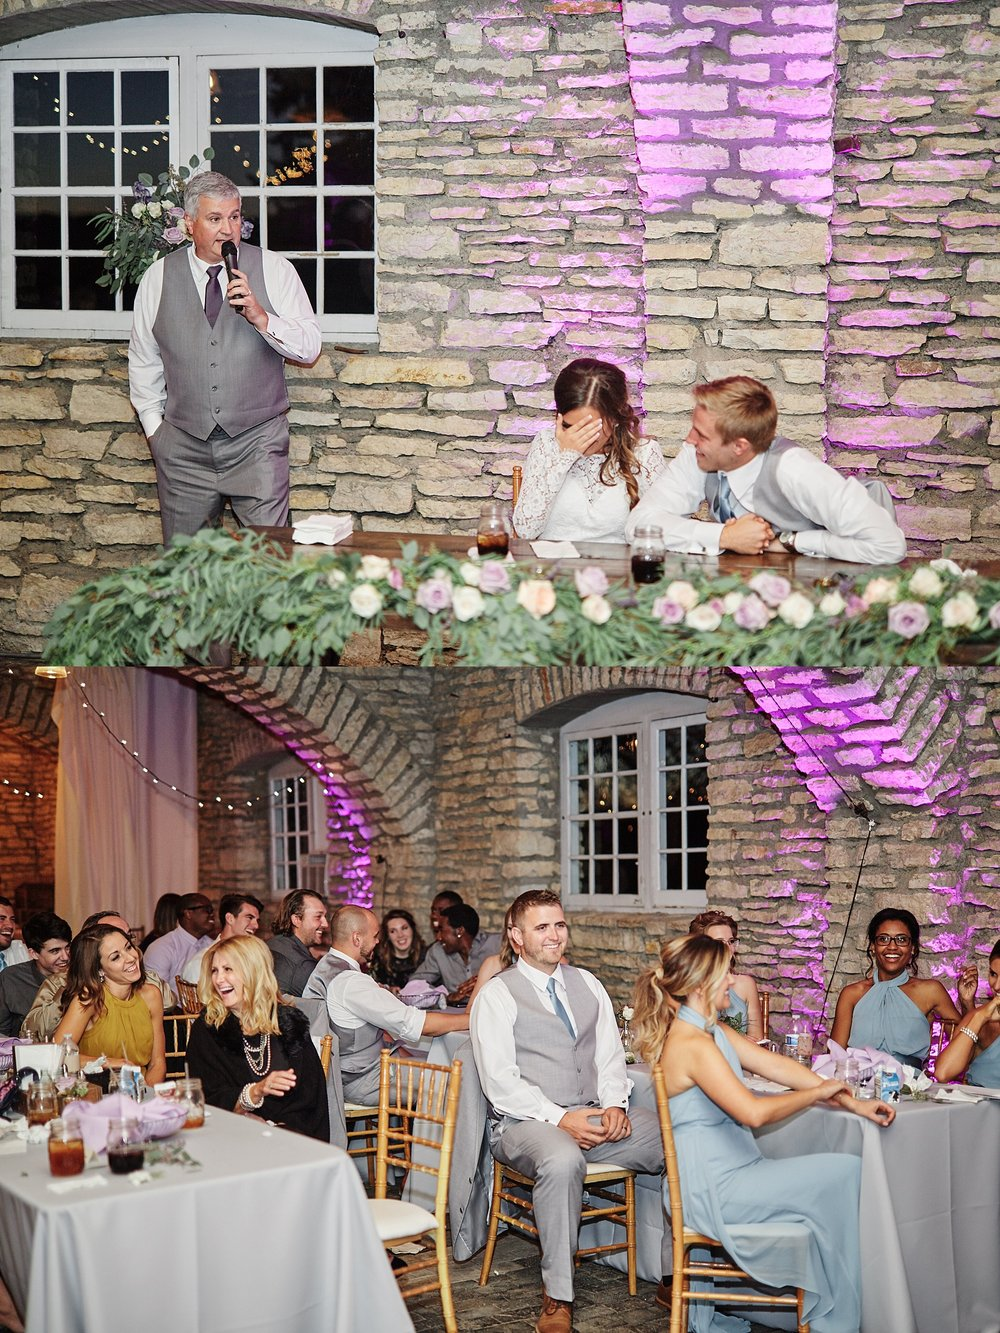 Maywood-Stone-Barn-Wedding-Rochester-Minnesota-Perry-James-Photo_0690.jpg